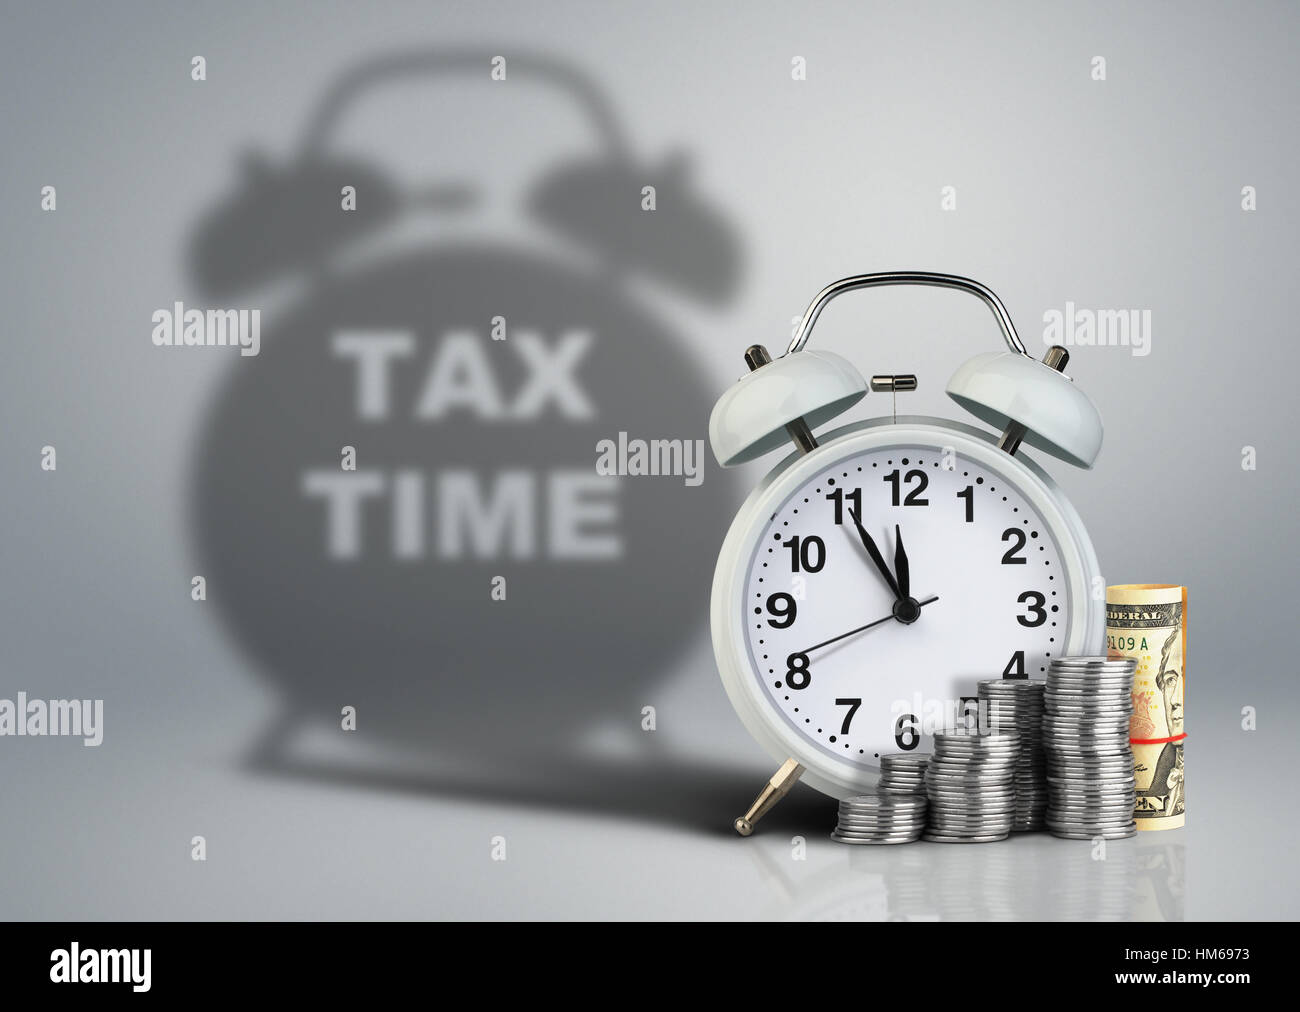 Clock with money and tax time shadow, financial concept - Stock Image